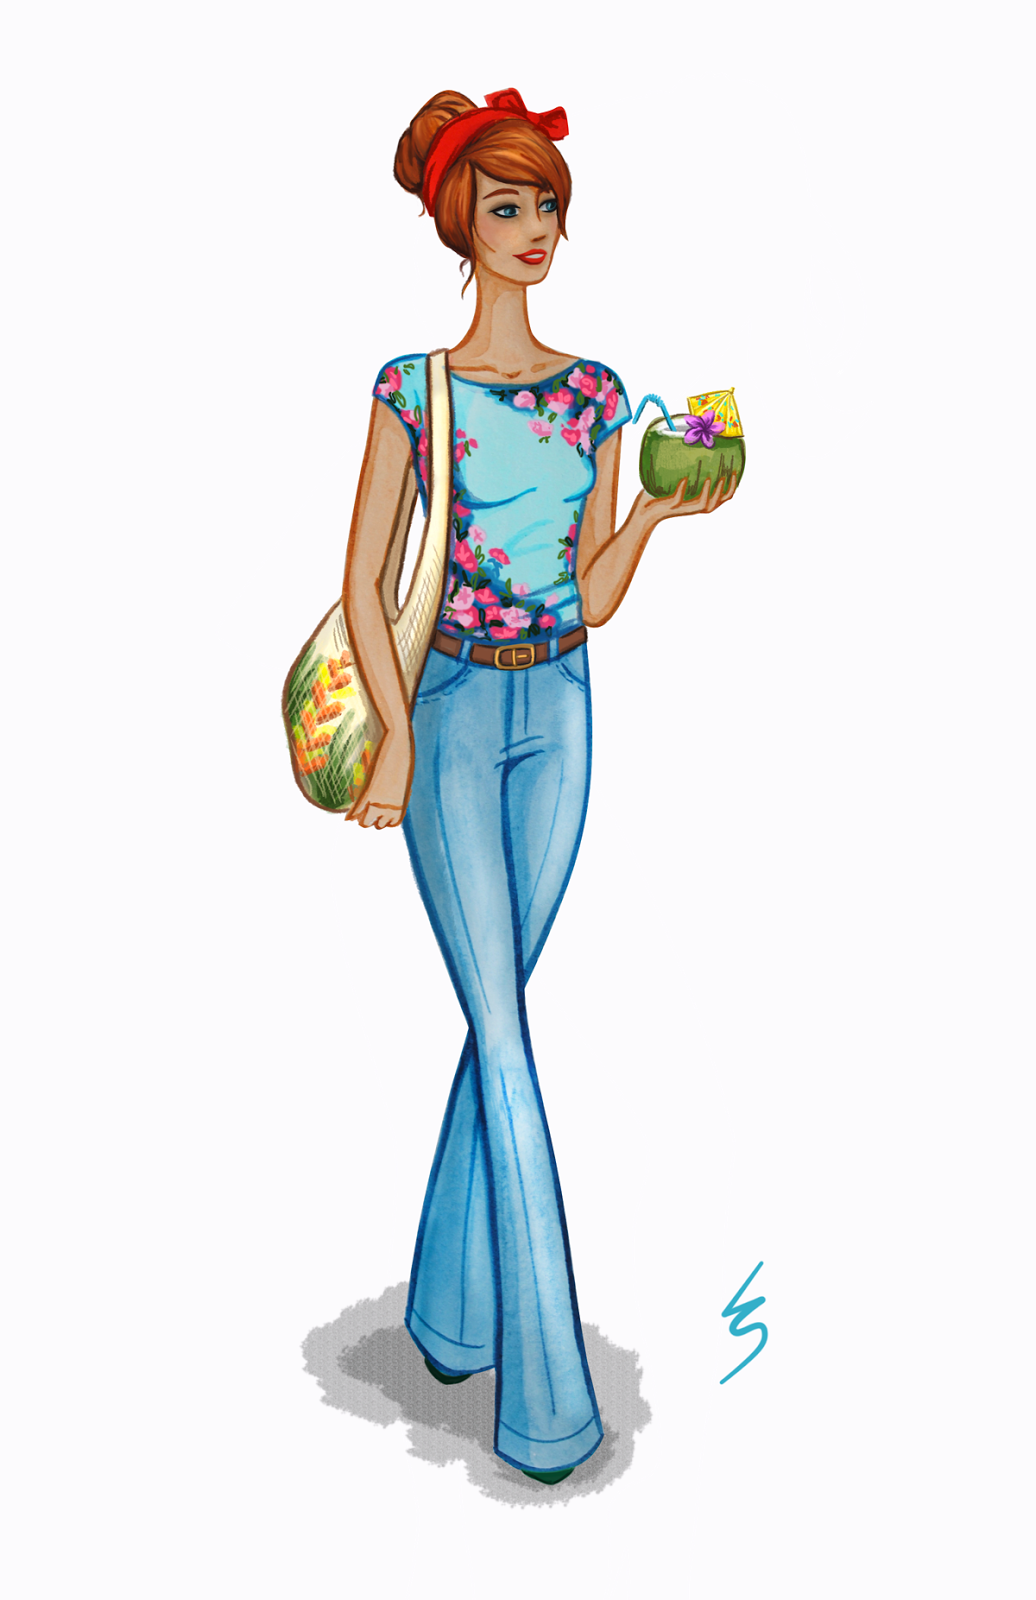 Lydia Snowden Illustration. Fashion Illustration. Flared jeans, floral top, red hair.